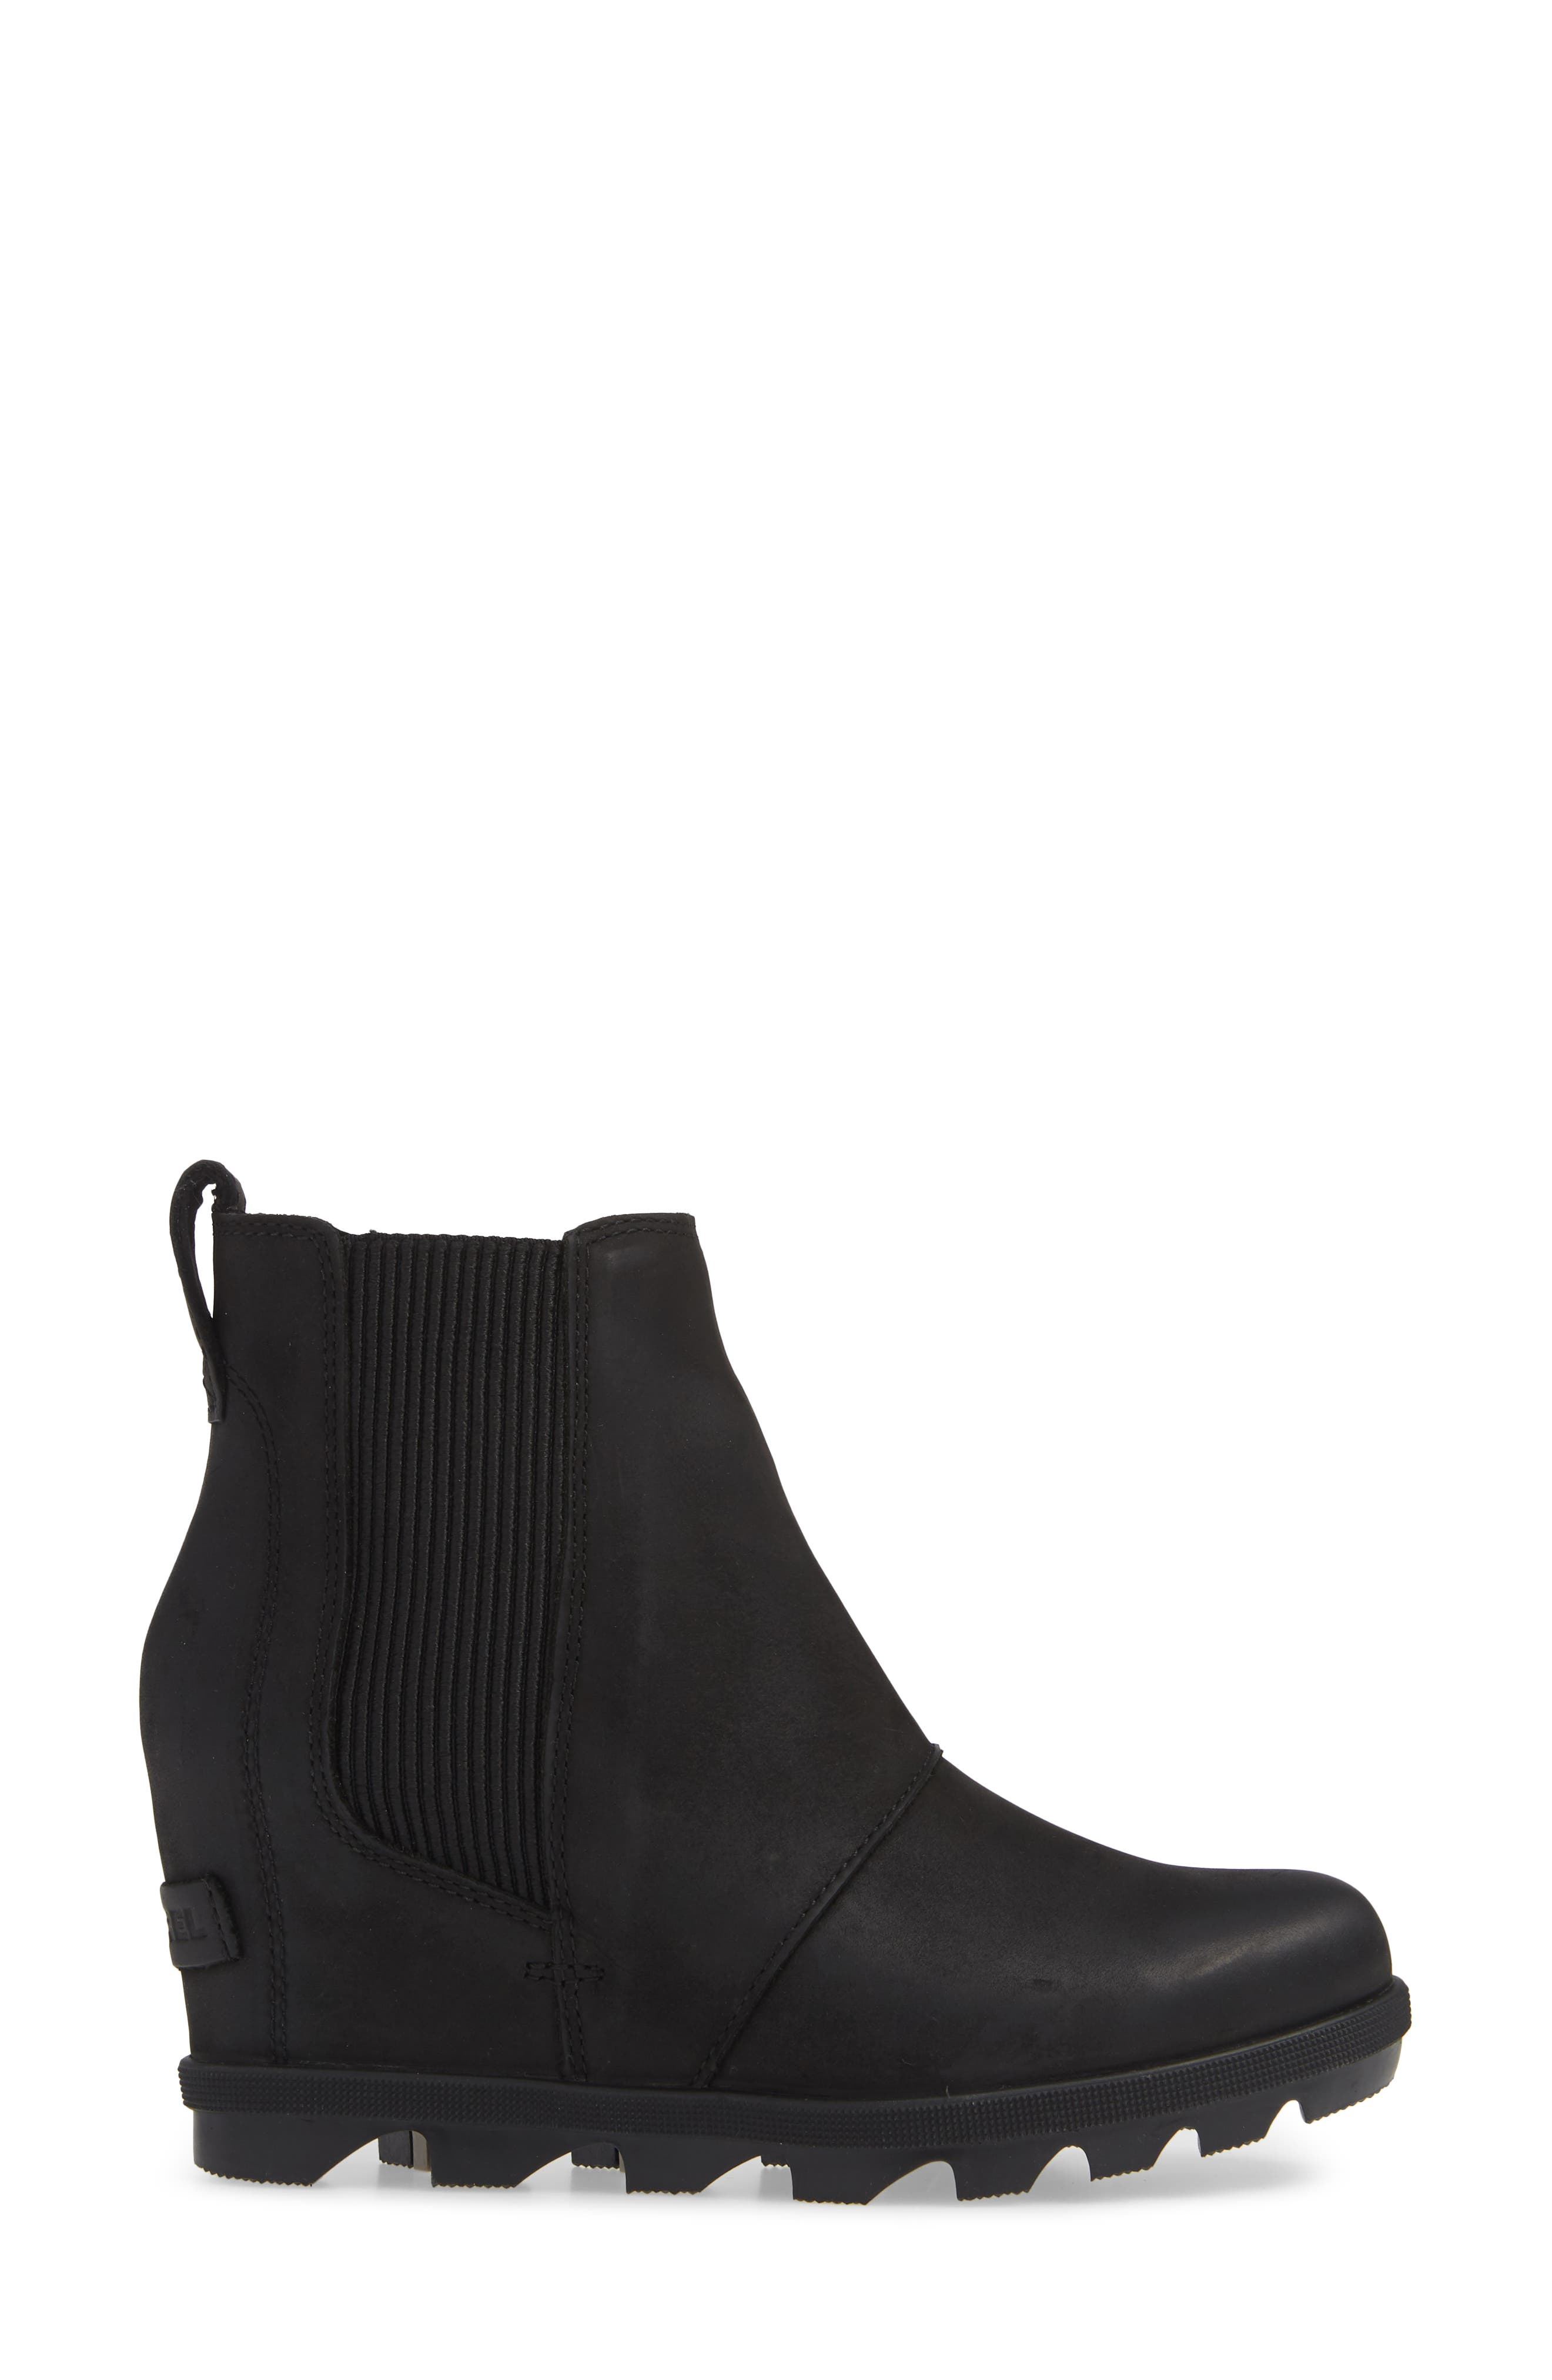 SOREL,                             Joan of Arctic II Waterproof Wedge Bootie,                             Alternate thumbnail 3, color,                             BLACK